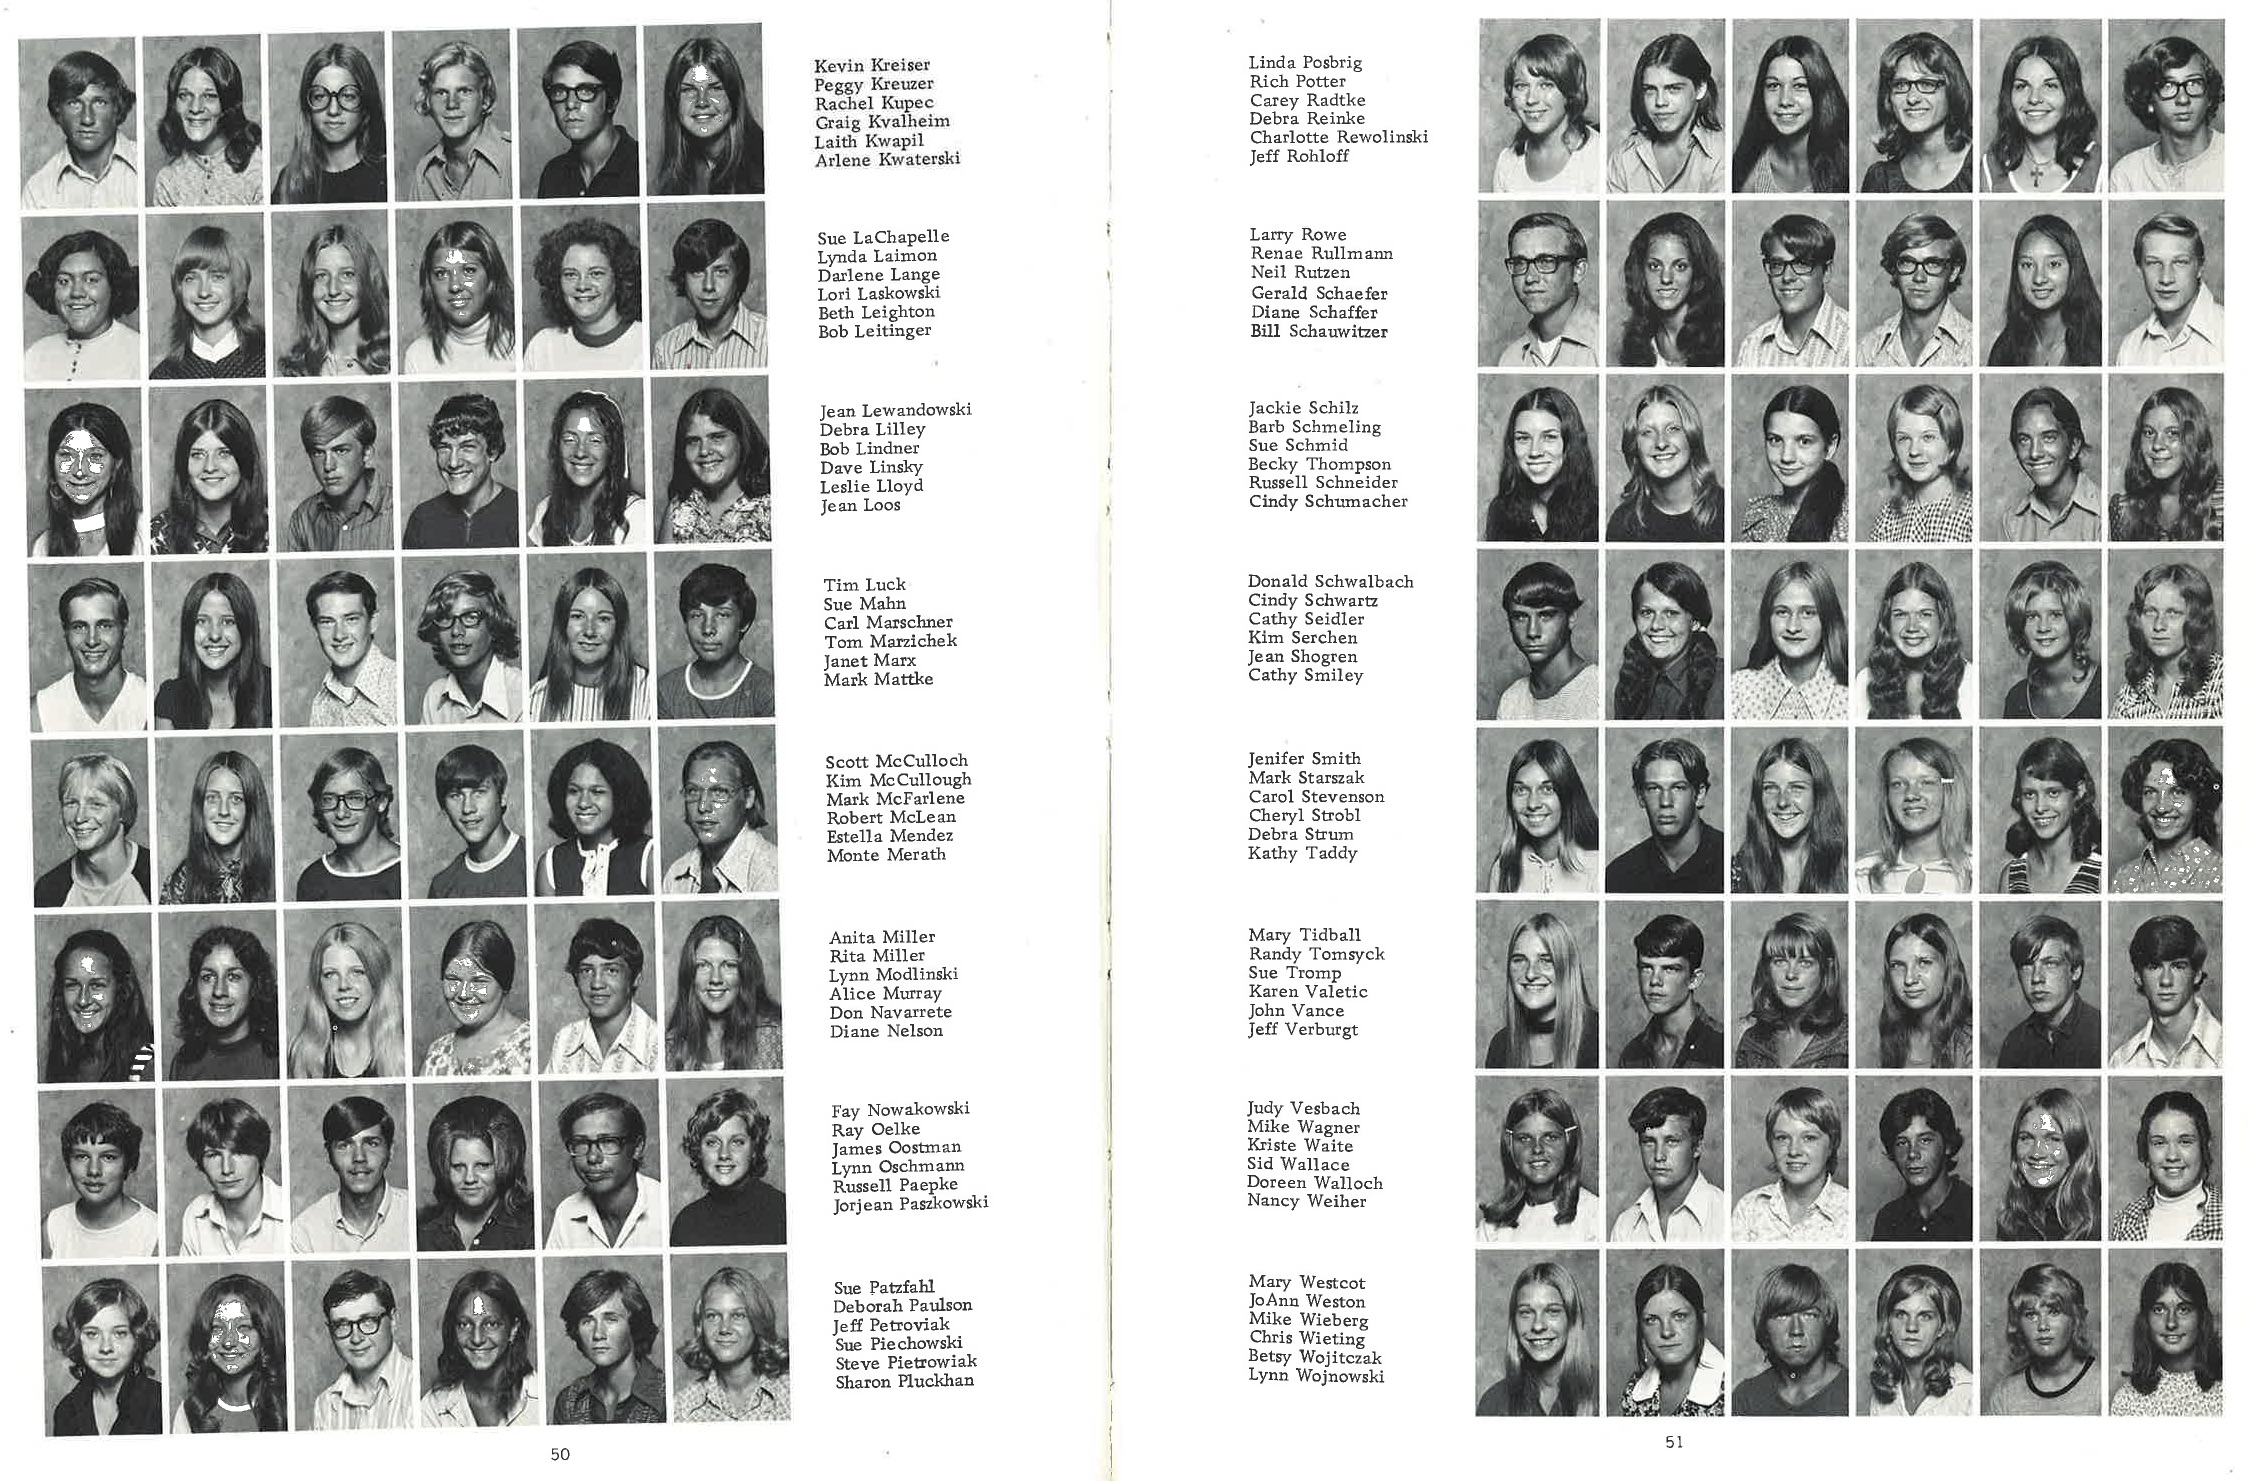 1973_Yearbook_50-51.jpg